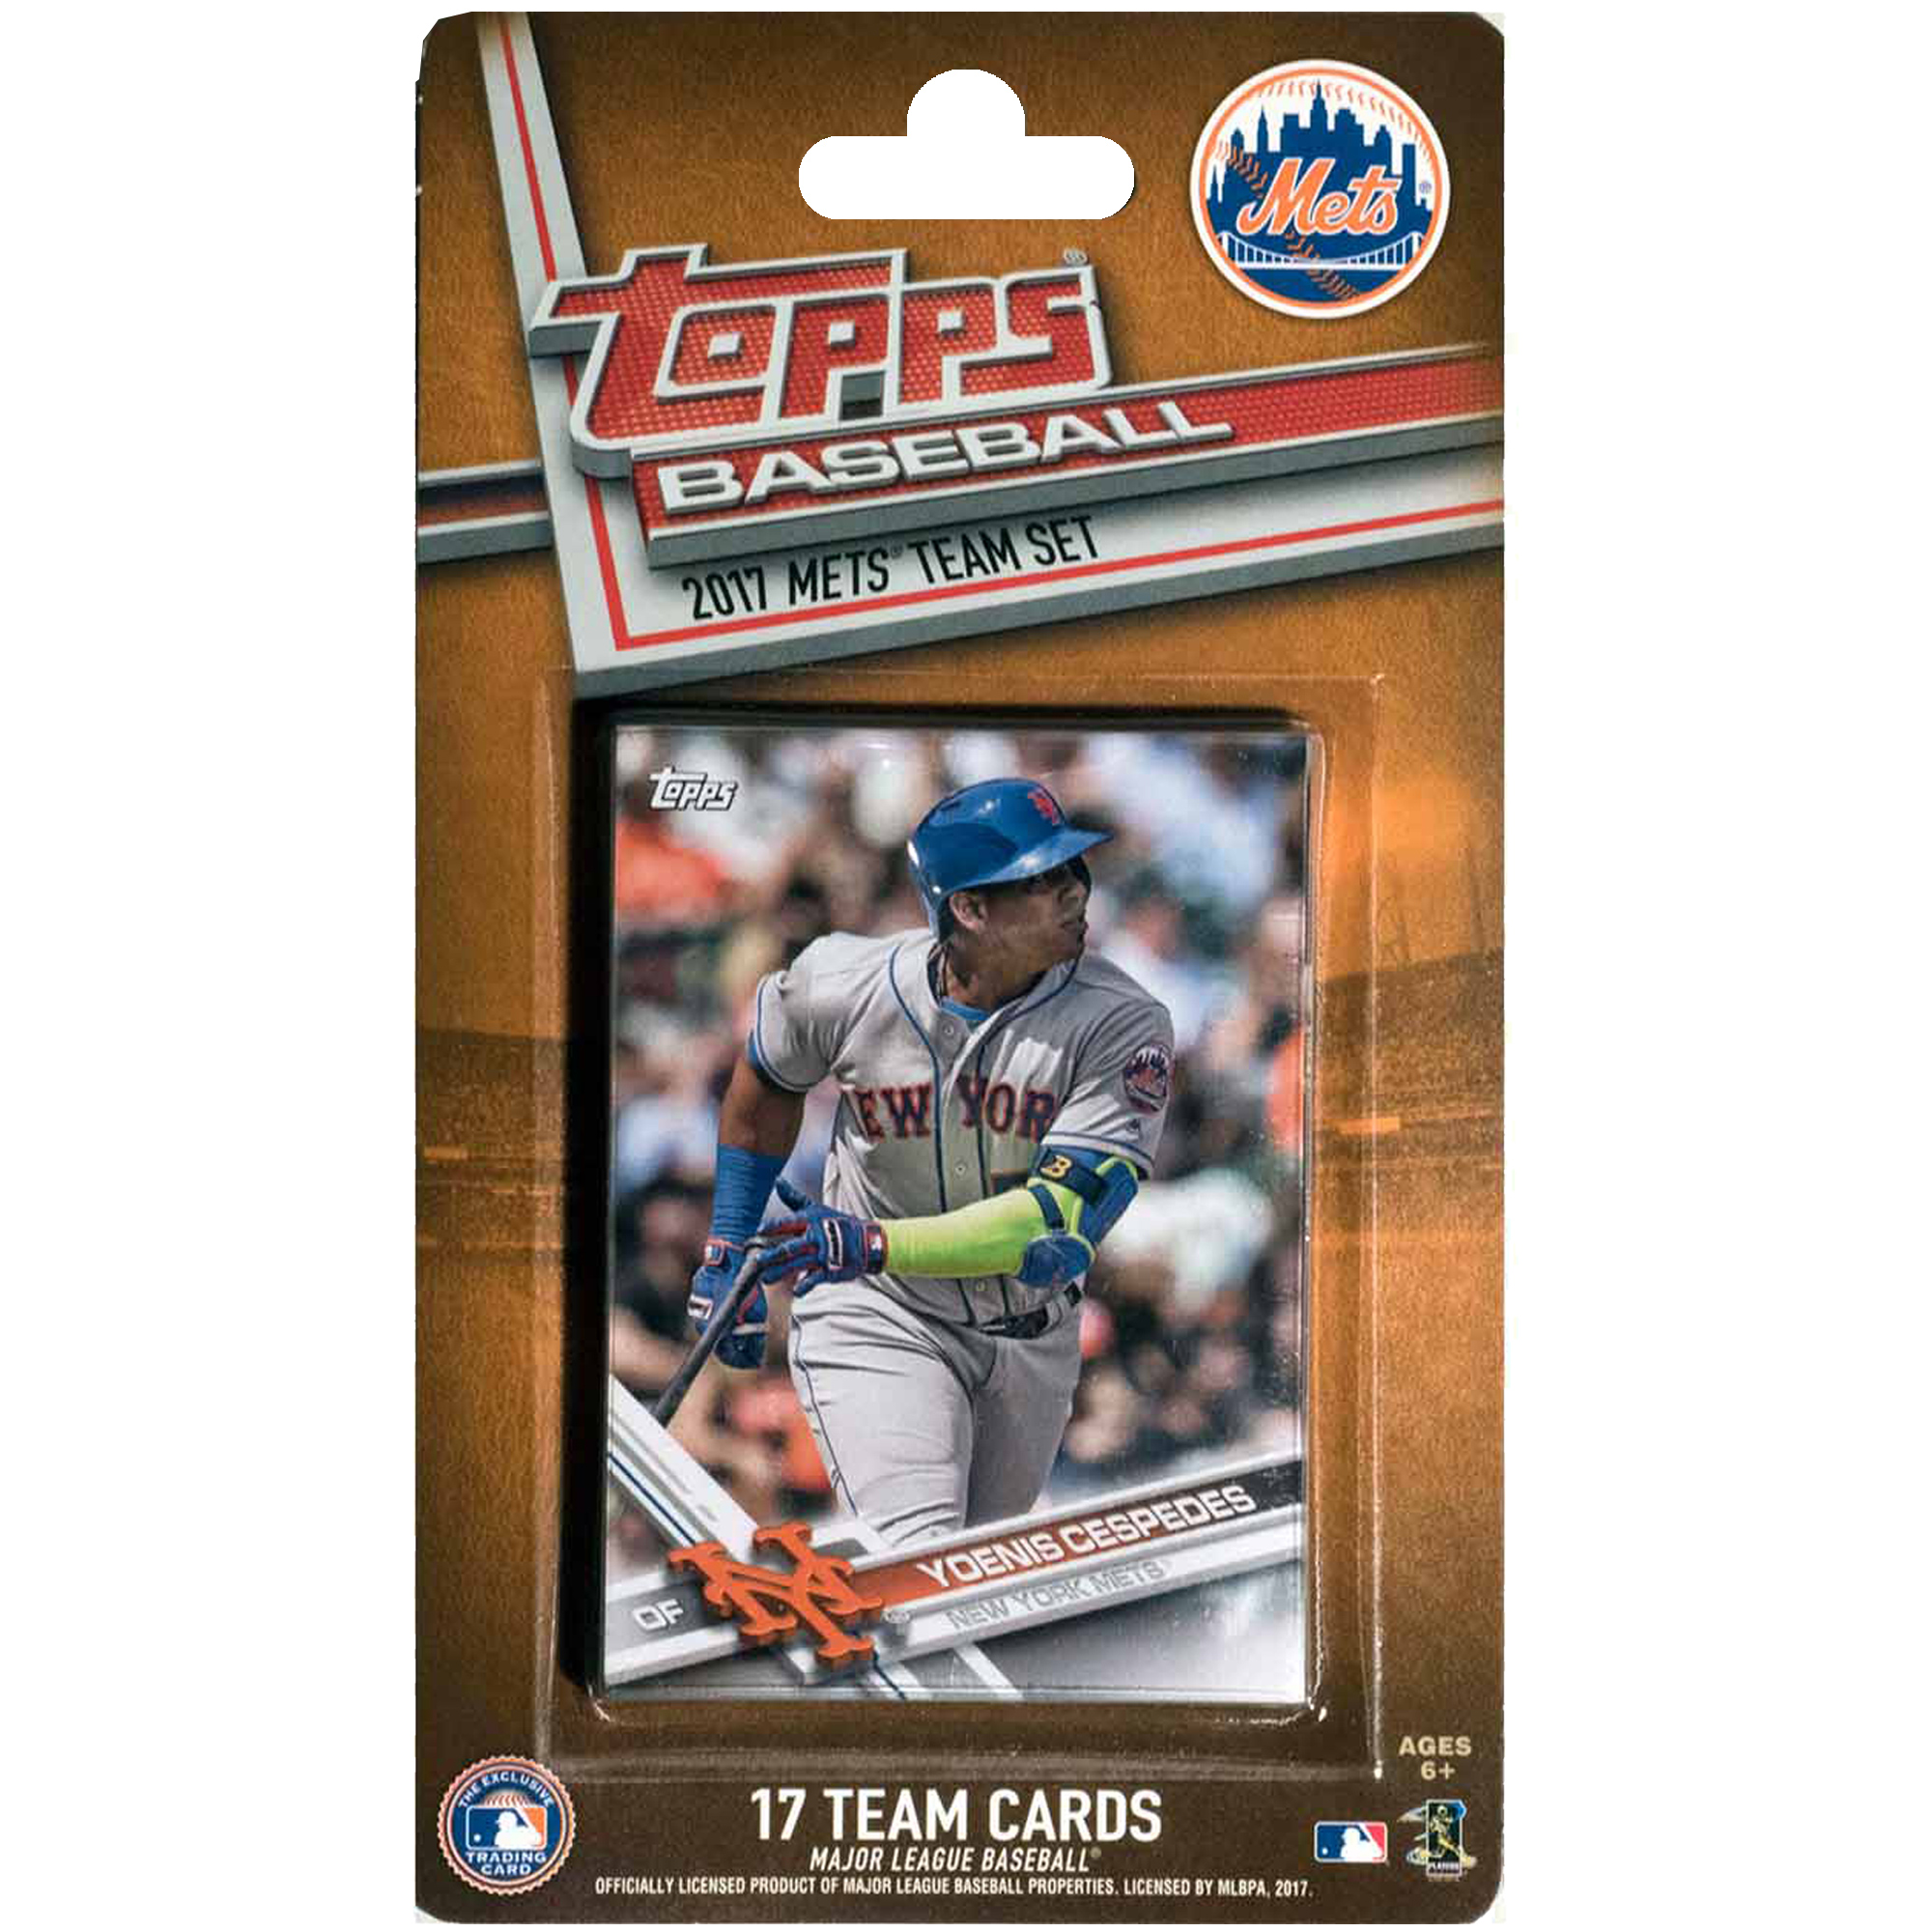 New York Mets 2016/17 Team Set Baseball Trading Cards - No Size